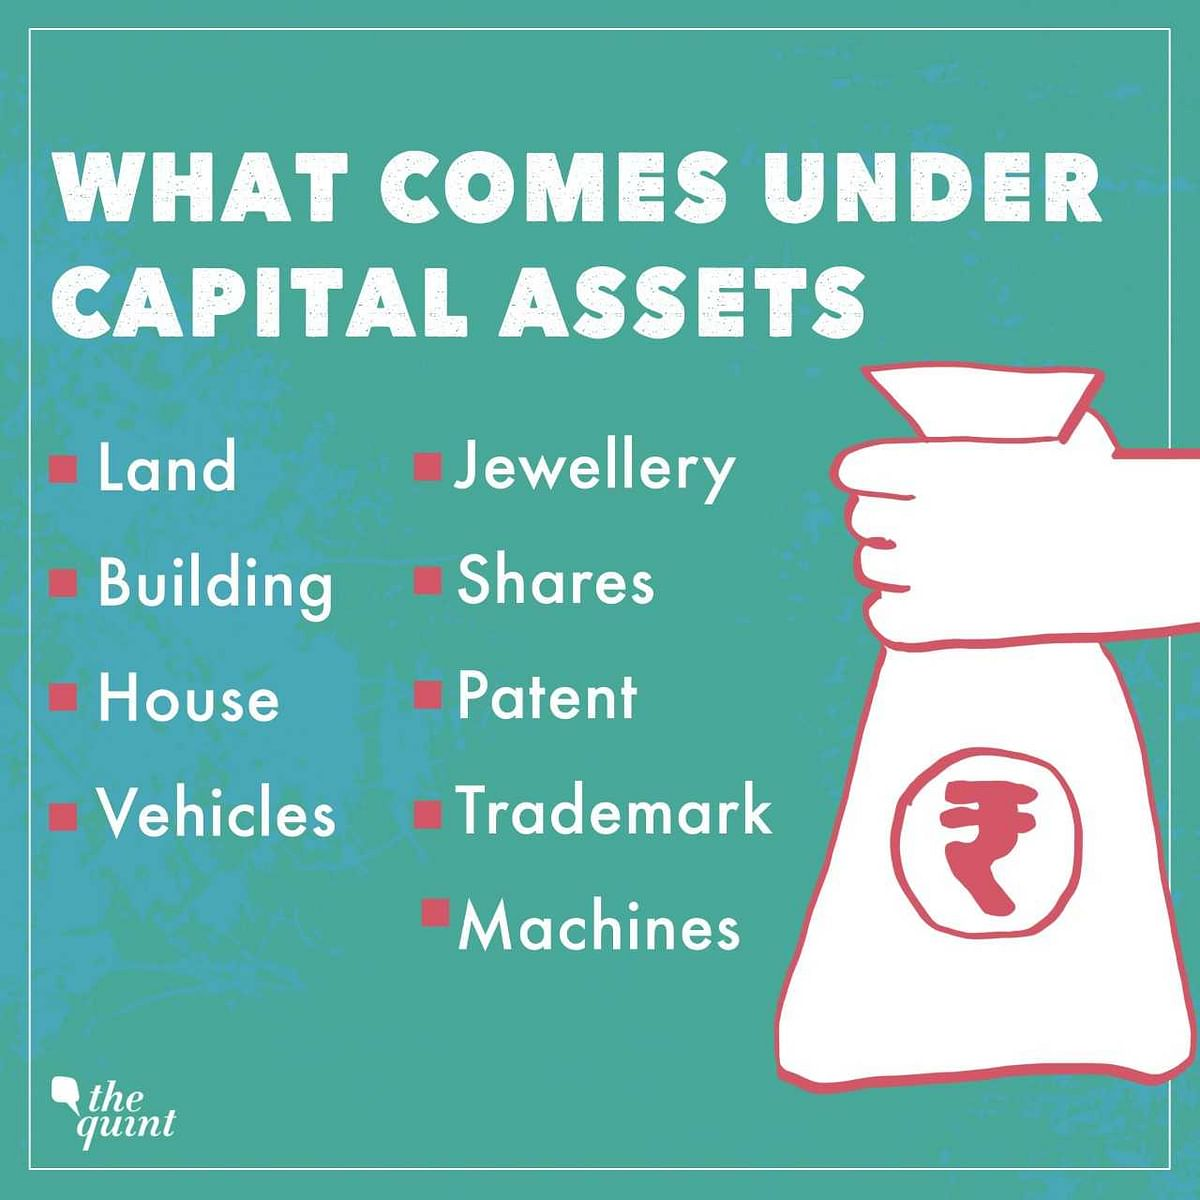 House to Vehicles: What Are Capital Gains Tax on Sale of Assets?